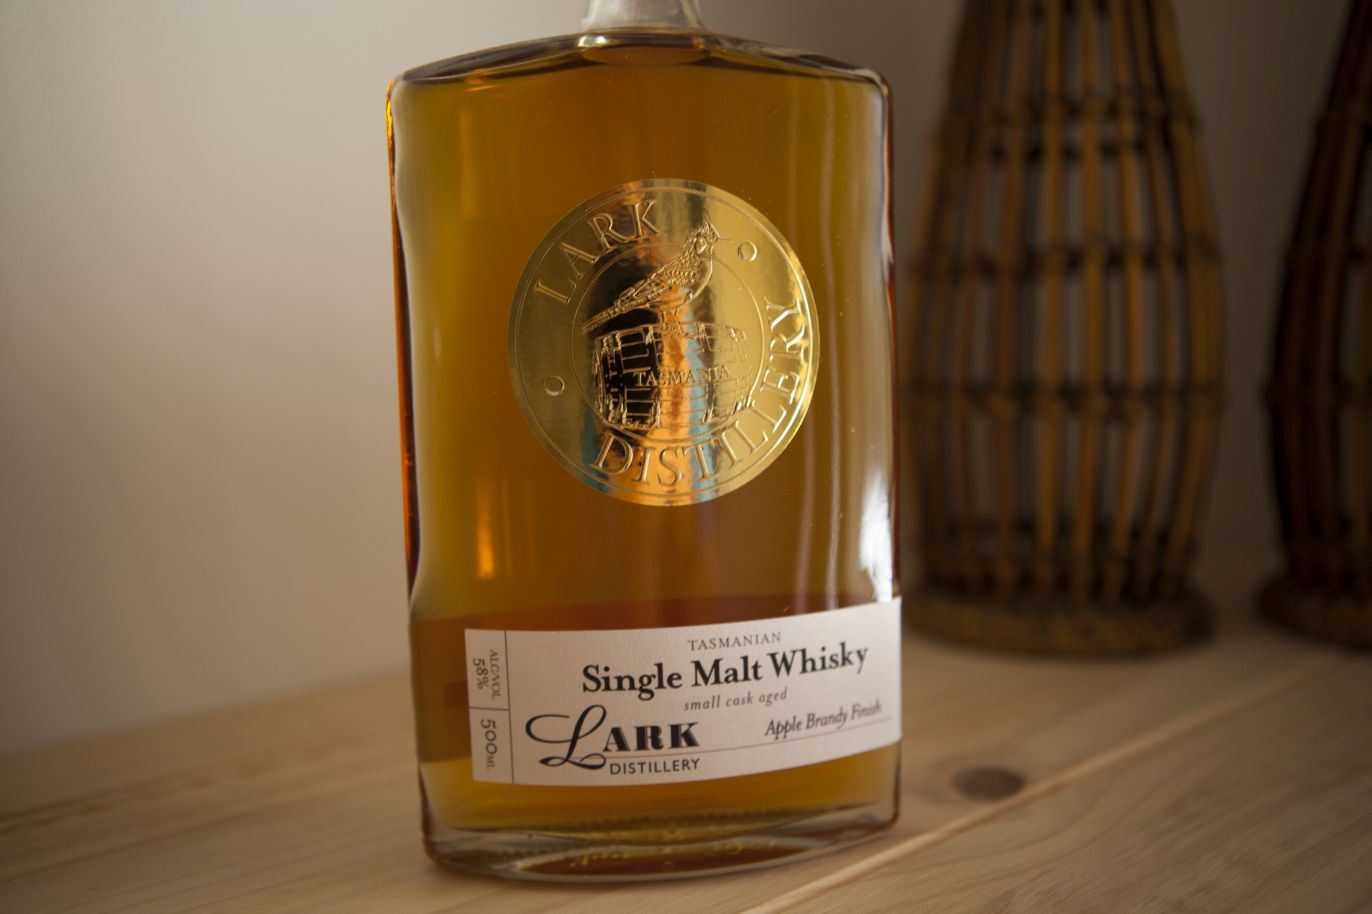 Lark for The Oak Barrel Apple Brandy Finish Whisky Review